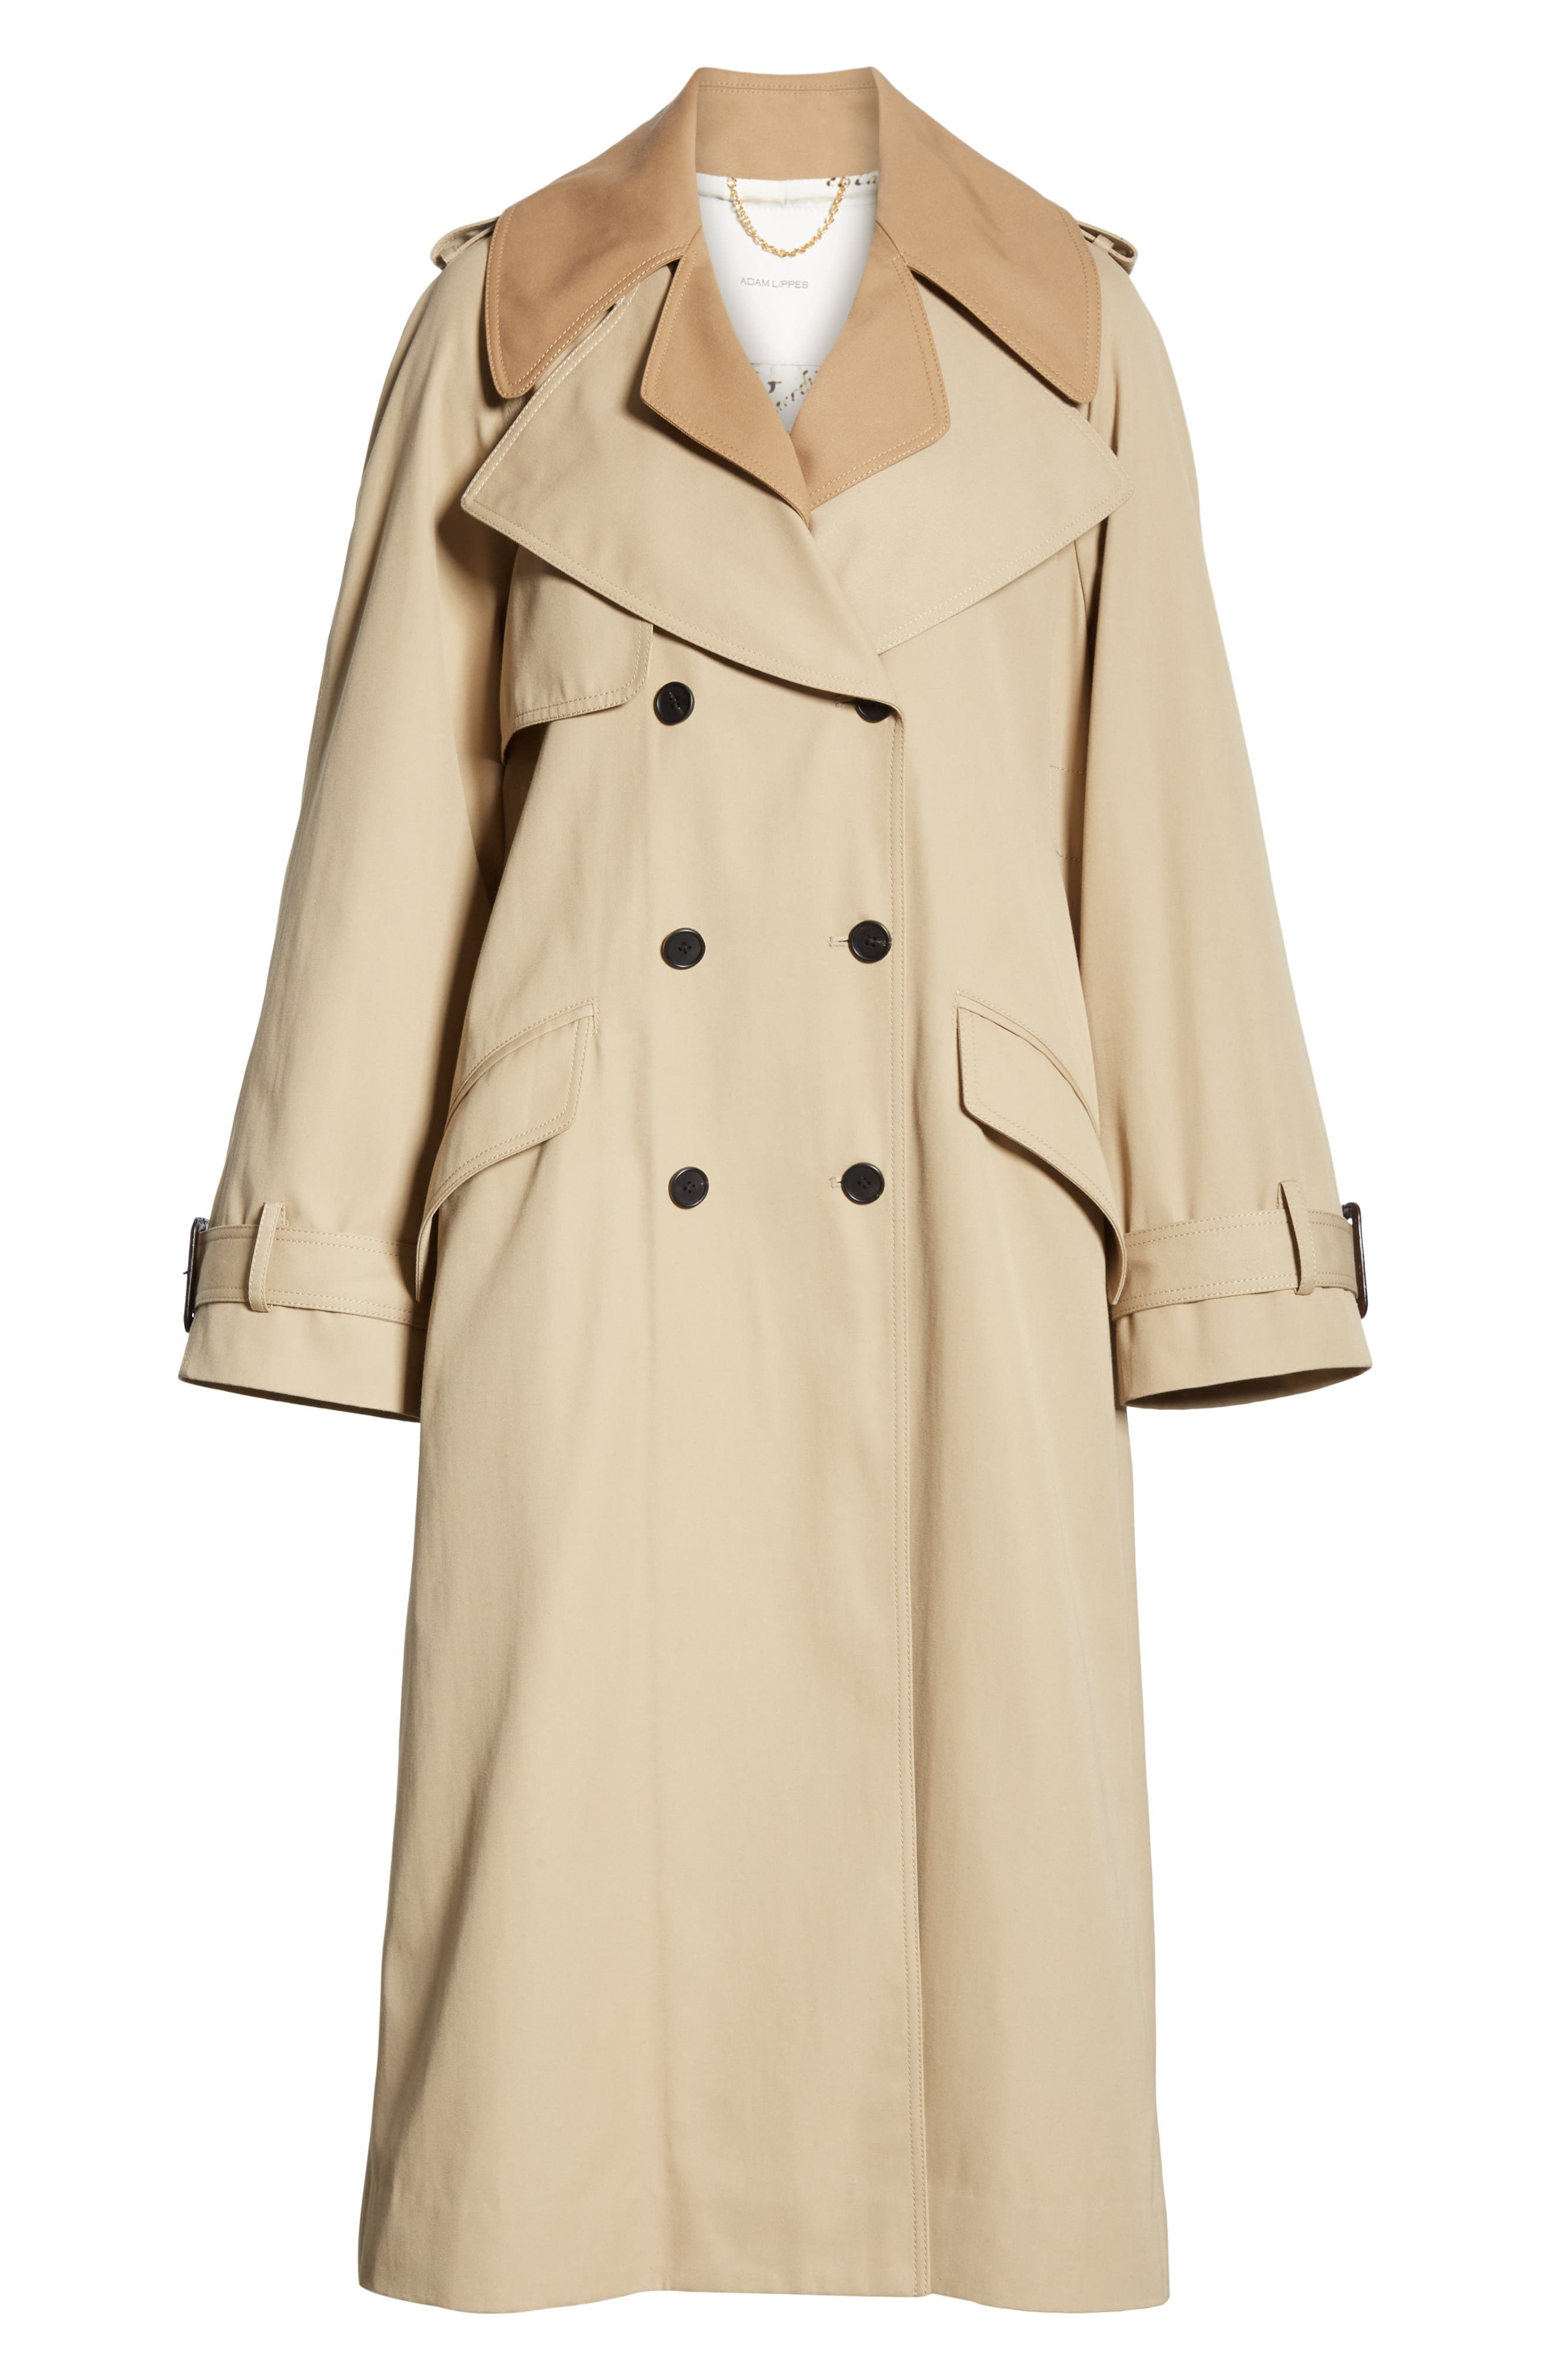 Trench Coat with Vest & Removable Fringe,                             Alternate thumbnail 6, color,                             KHAKI/ TAN